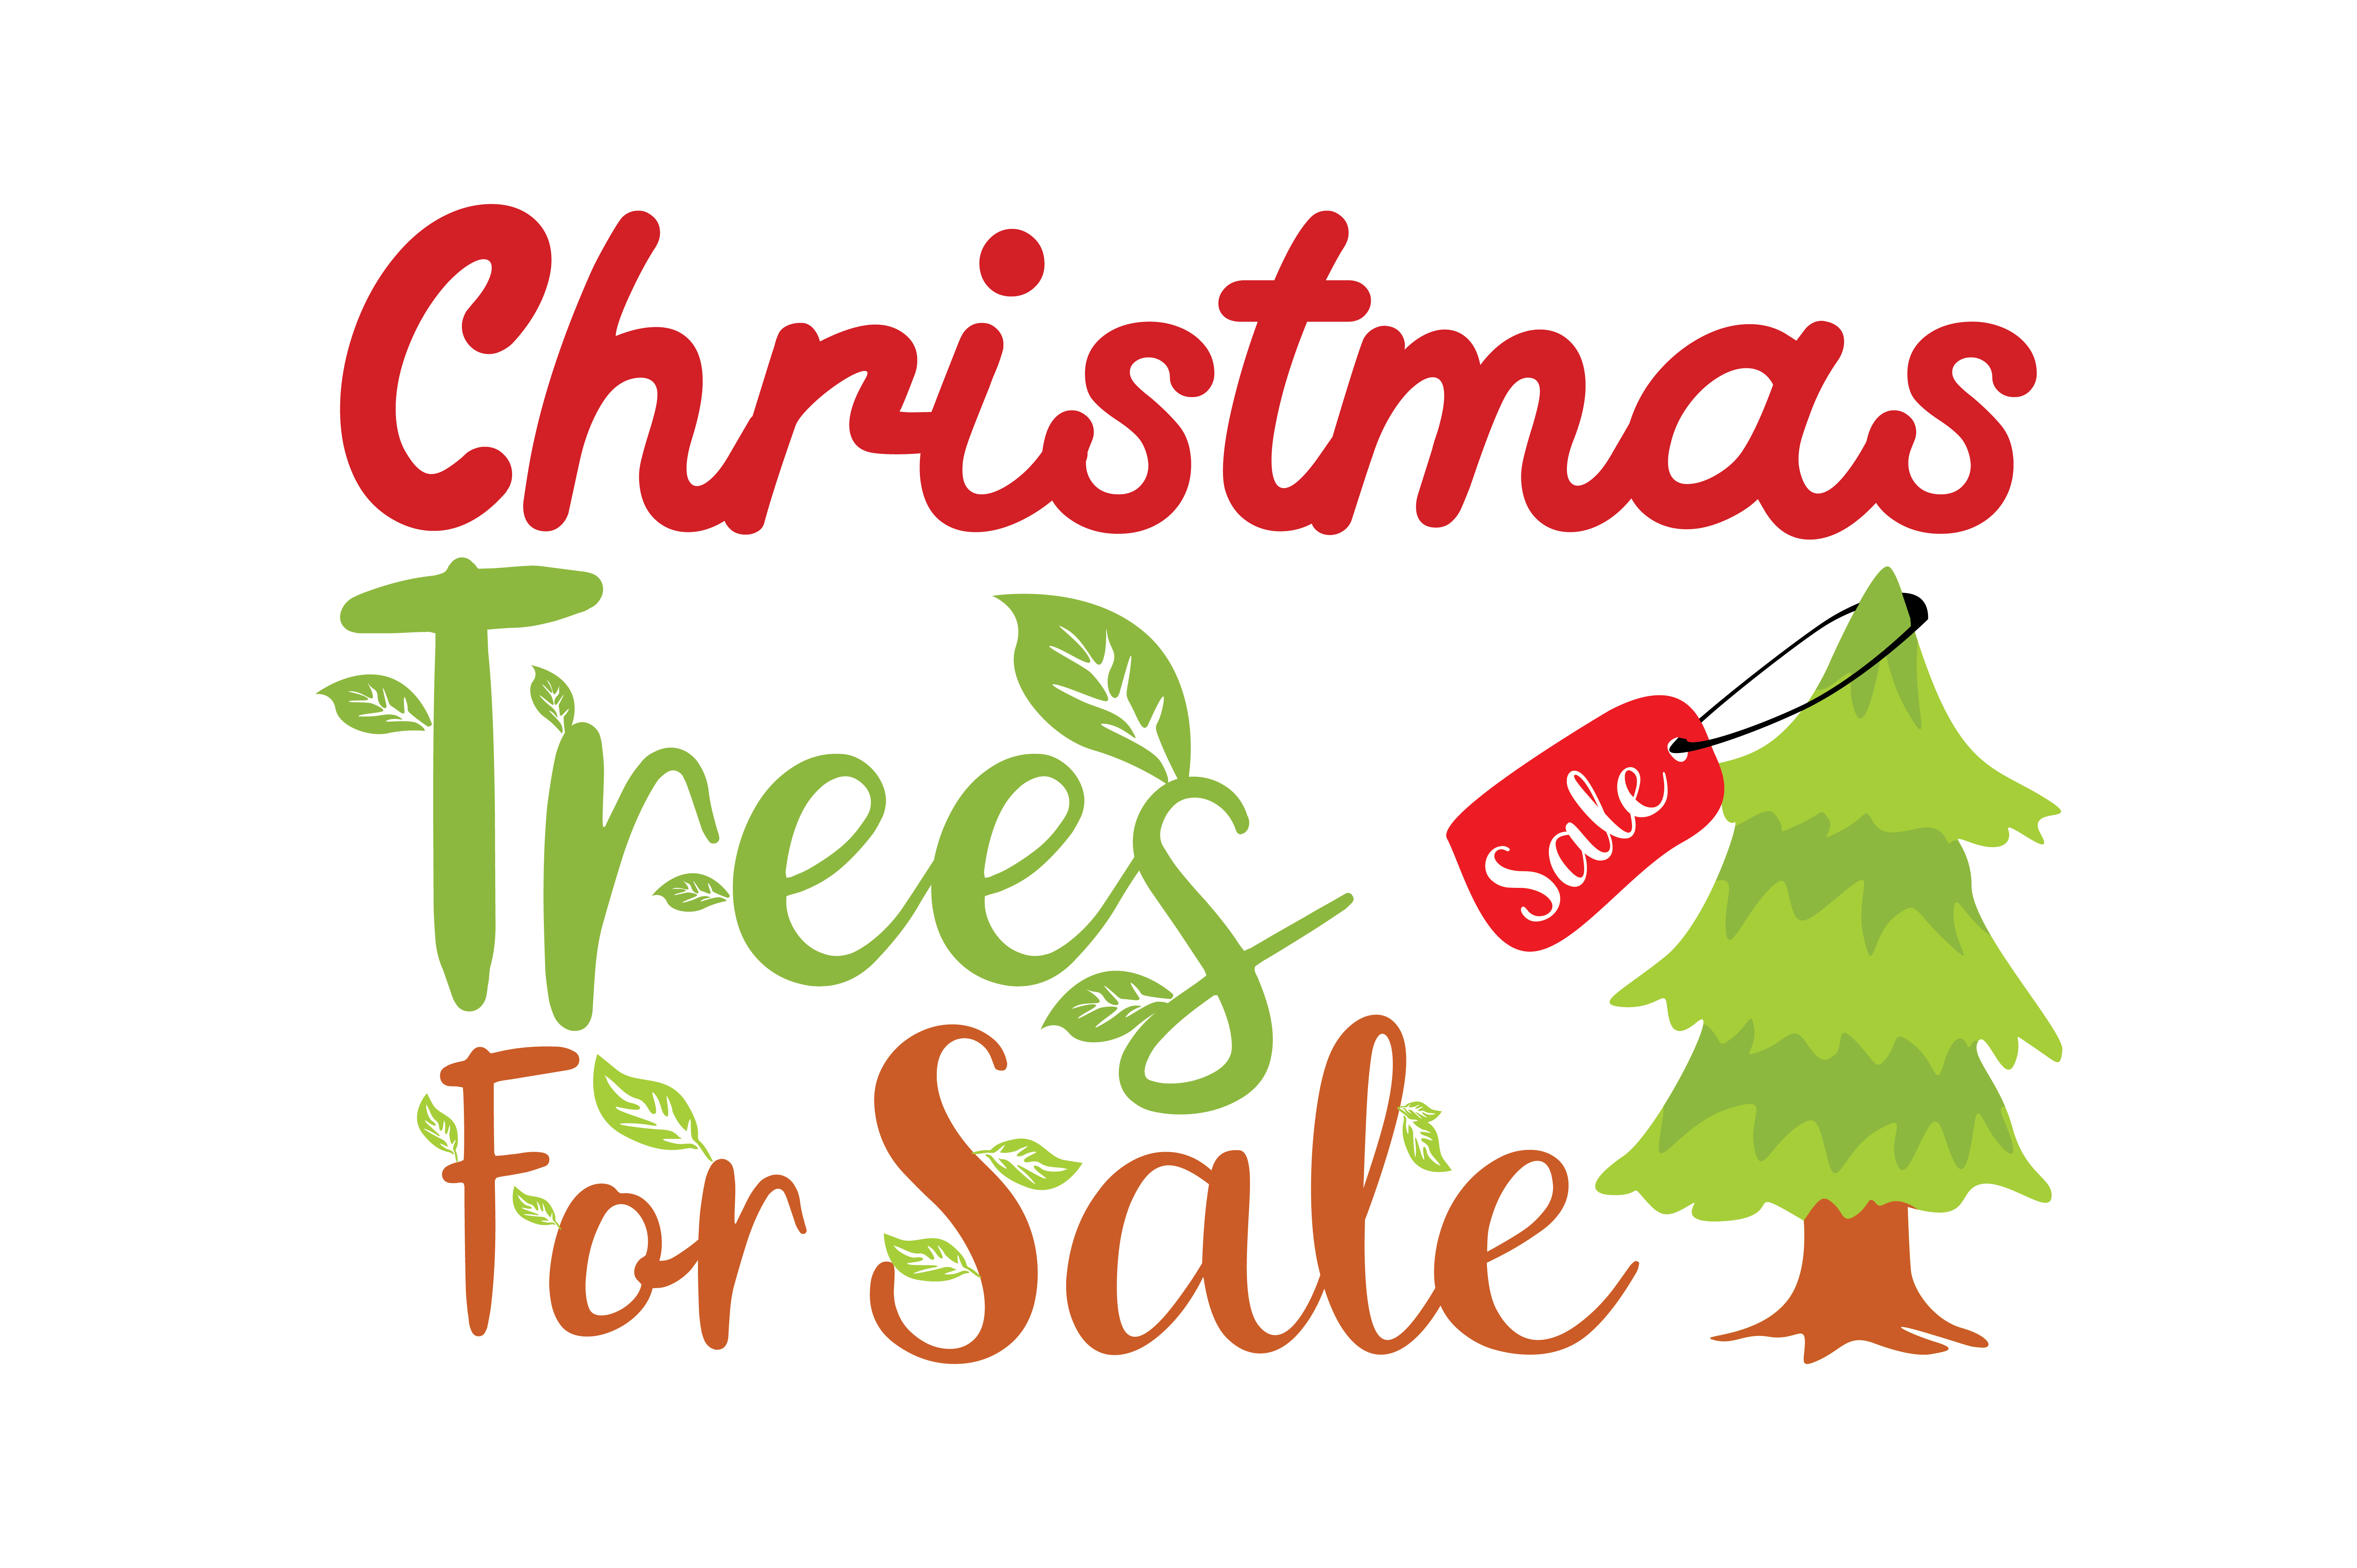 Download Free Christmas Trees For Sale Graphic By Thelucky Creative Fabrica for Cricut Explore, Silhouette and other cutting machines.